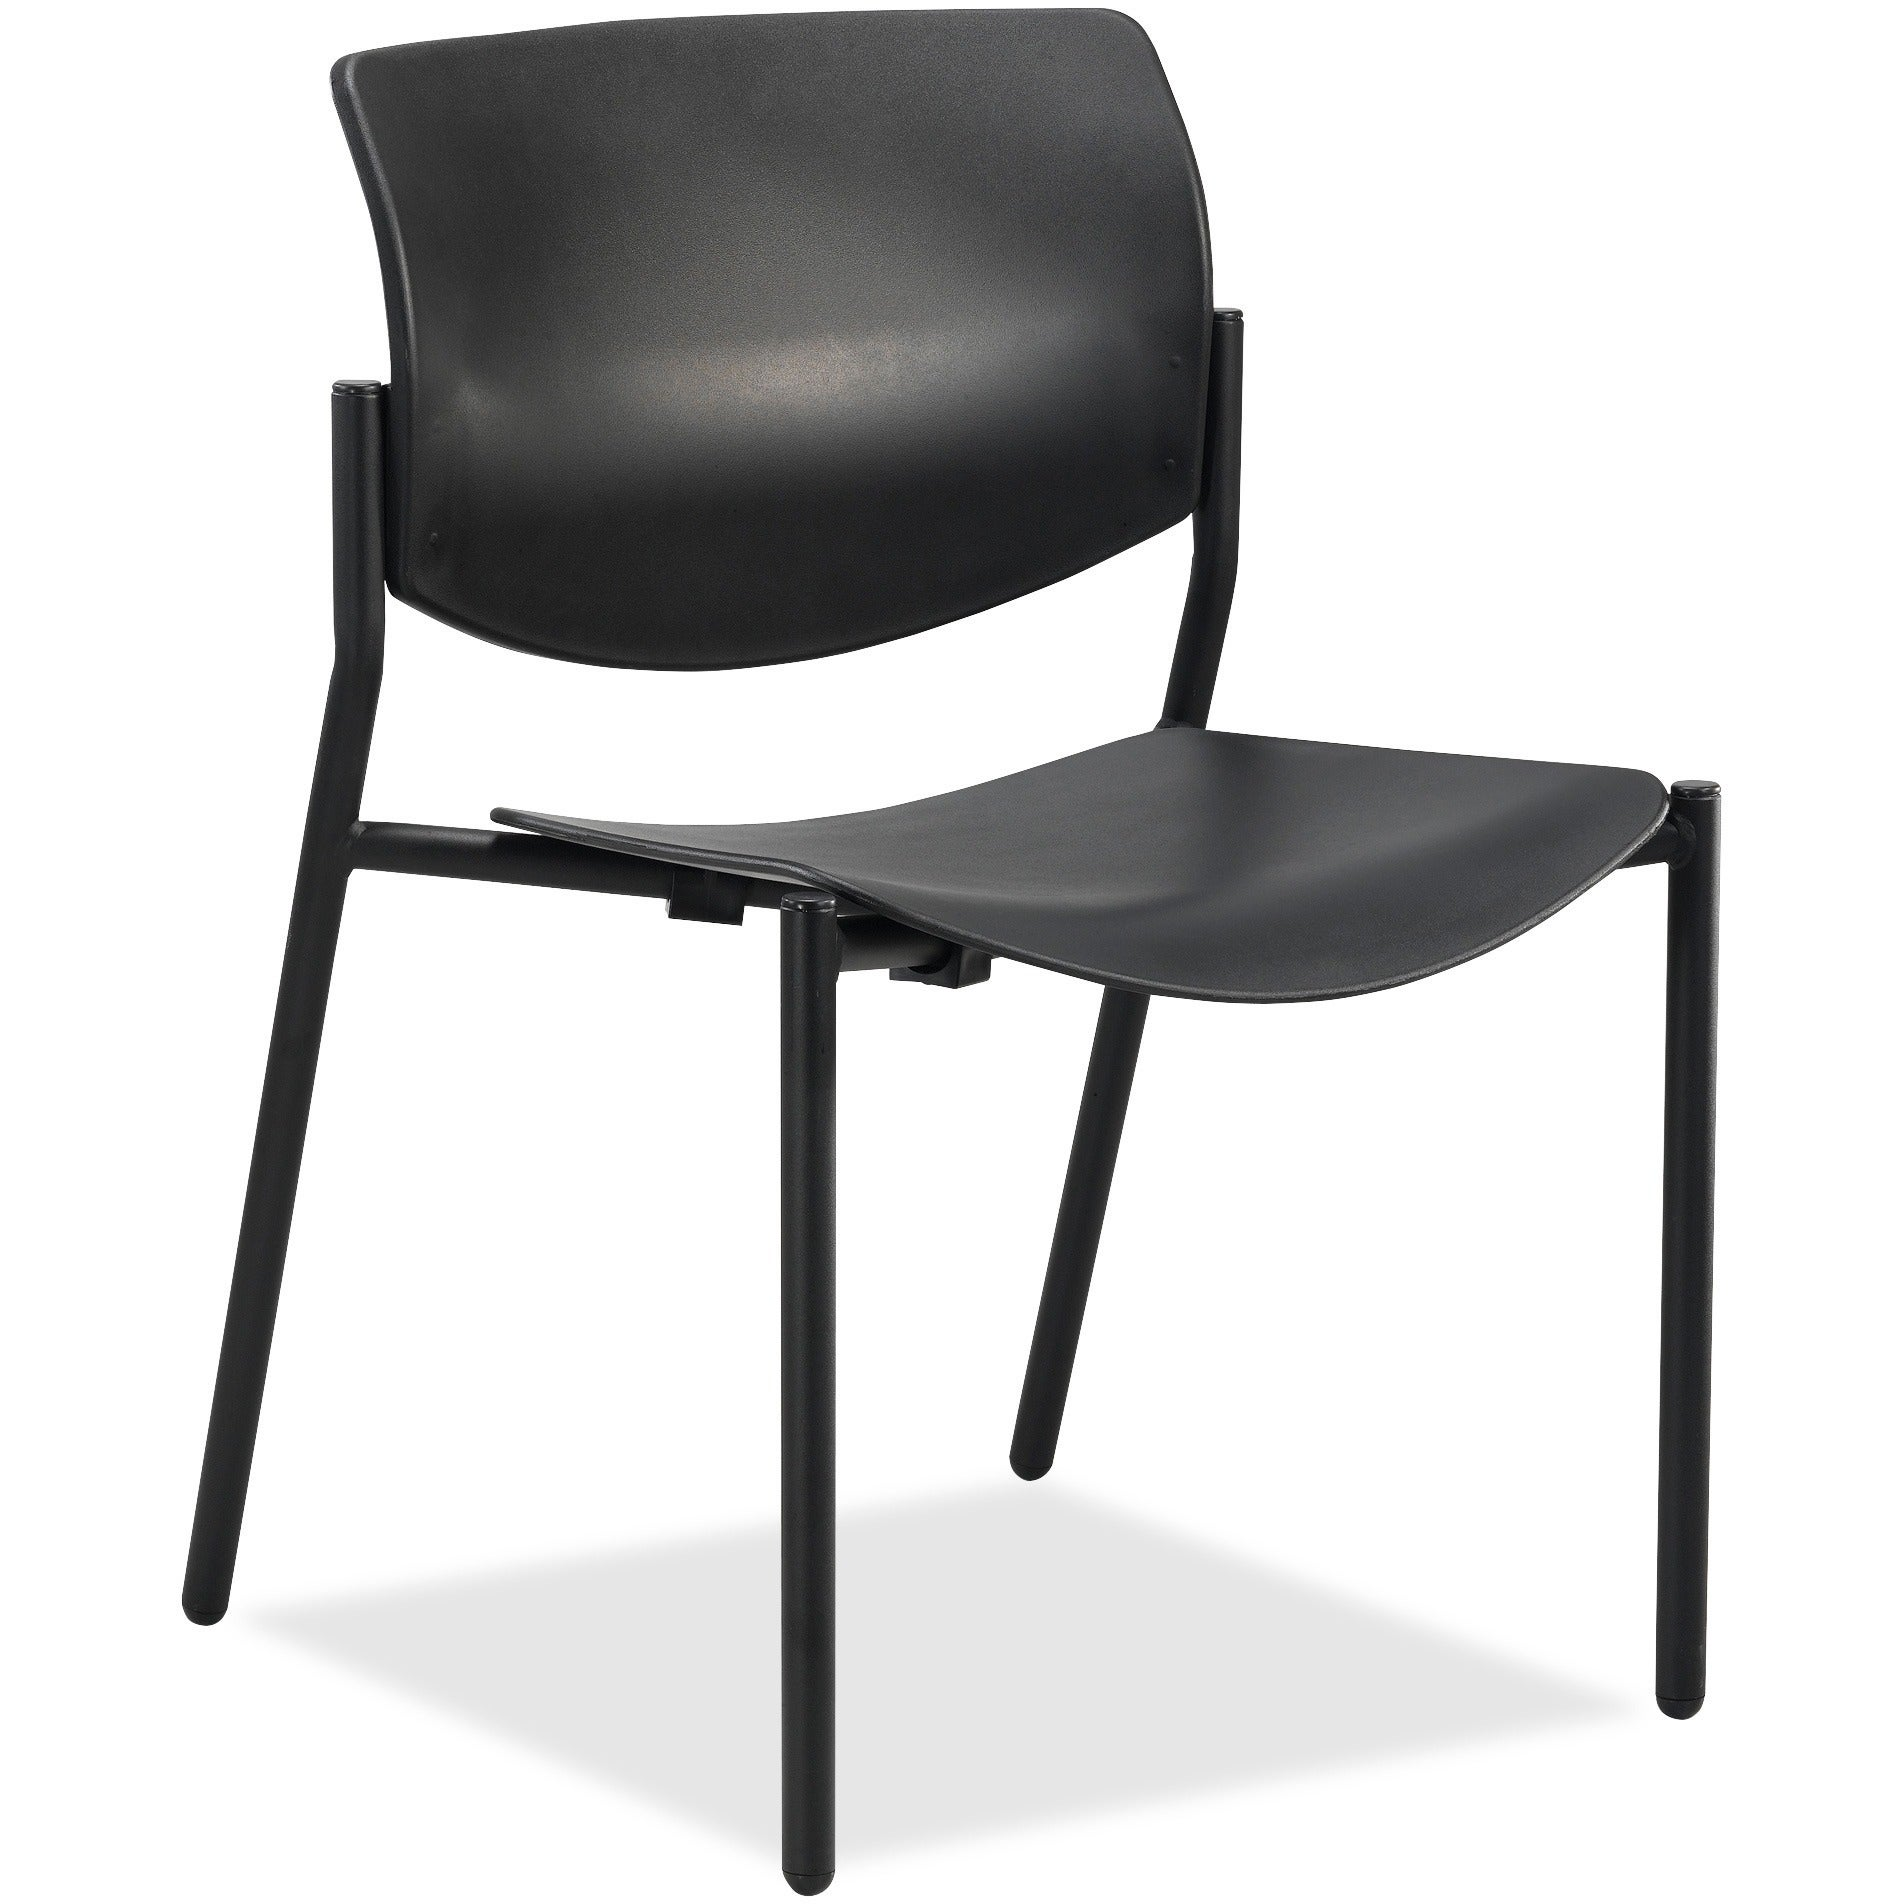 Details About Lorell Black Plastic Steel Fabric Stacking Chairs Set Of 2 Blue